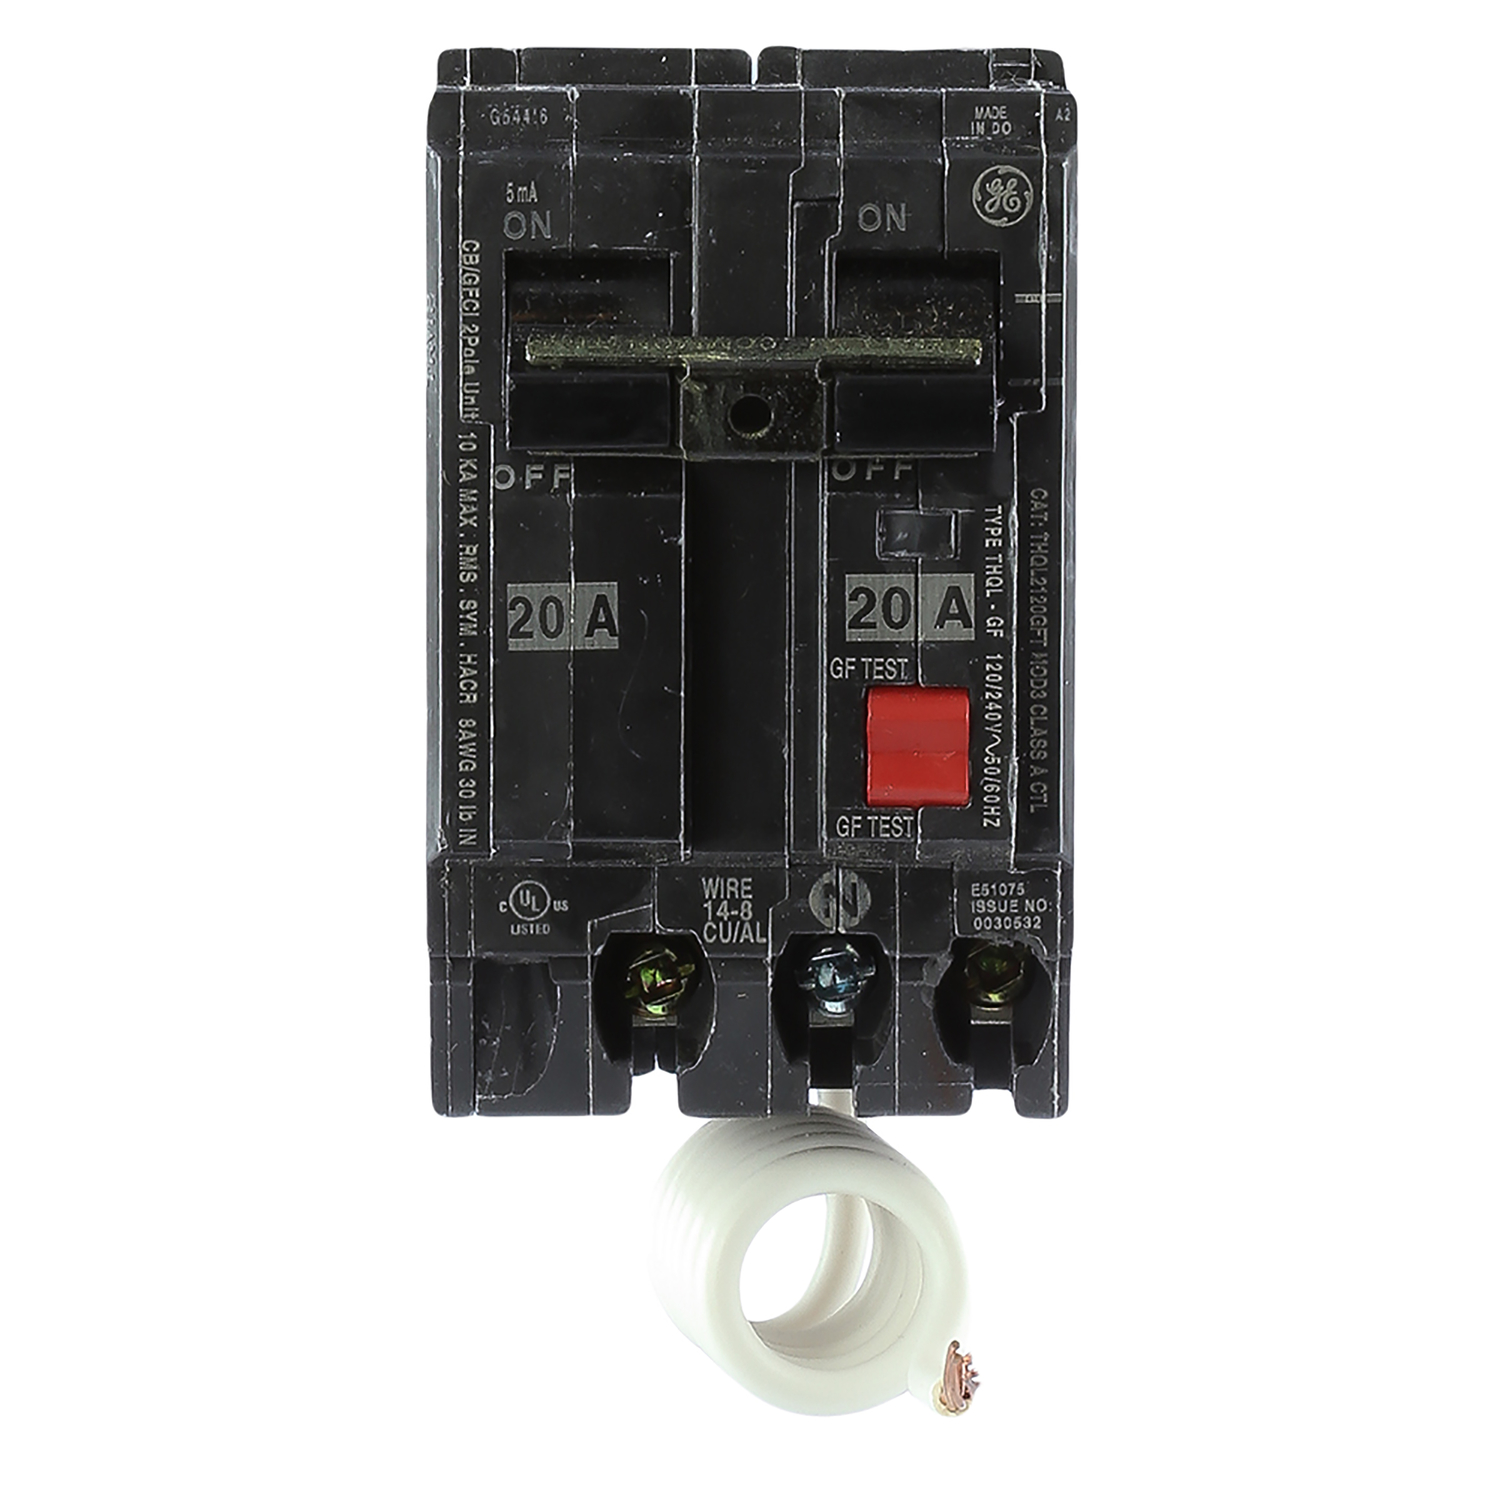 8 Awg Wire With 30 Amp Breaker - WIRE Center •